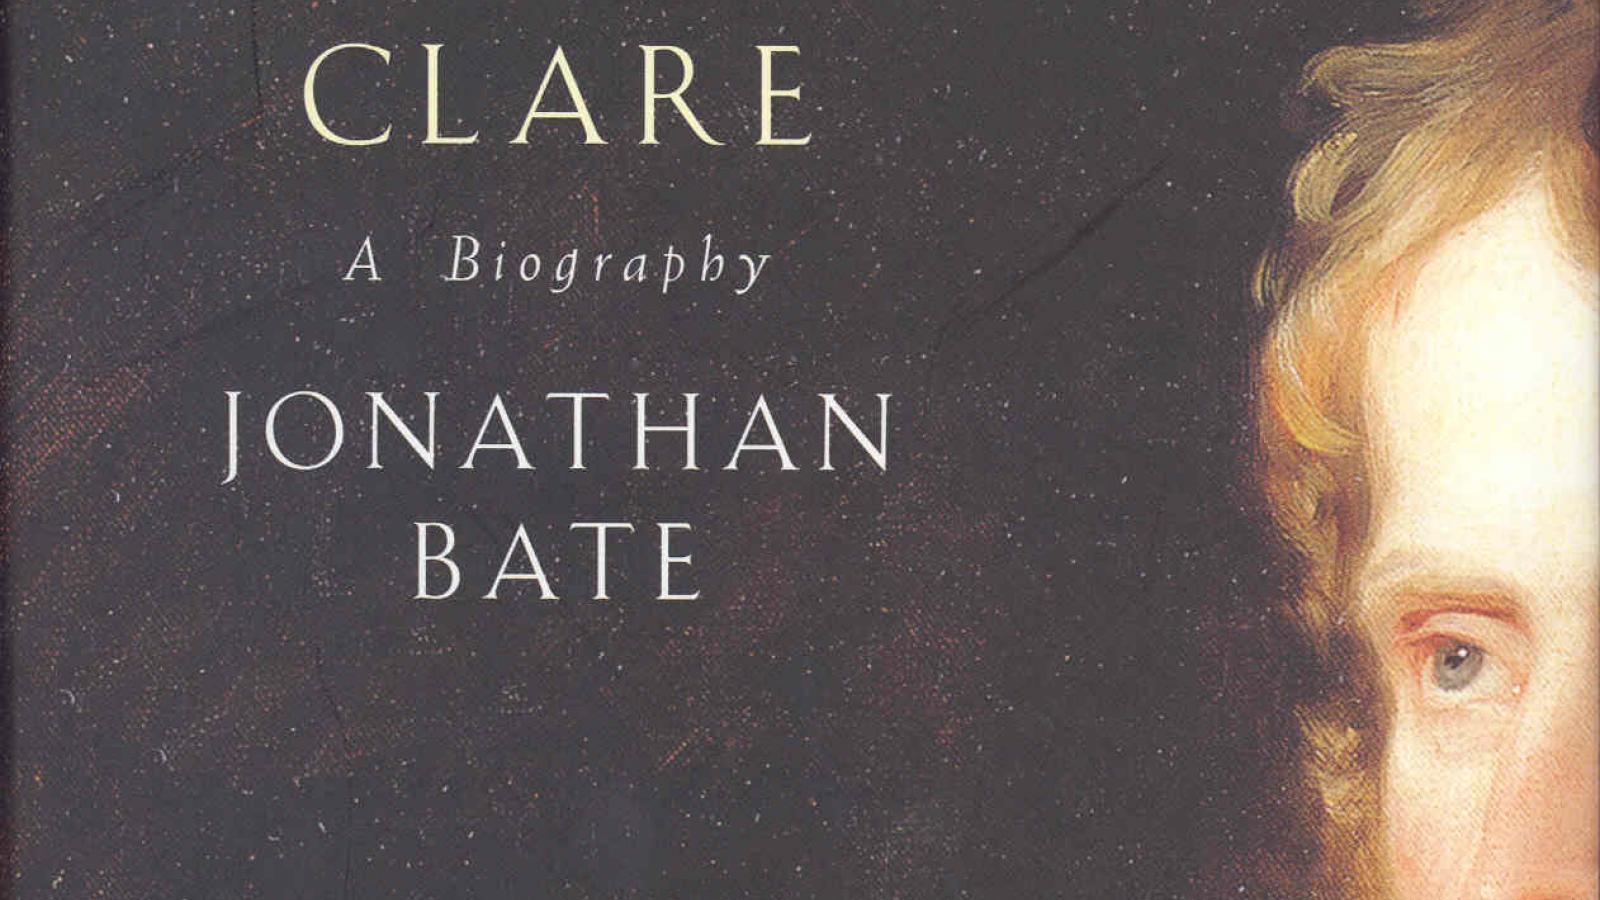 a biography of john clare Examine the life, times, and work of john clare through detailed author biographies on enotes.